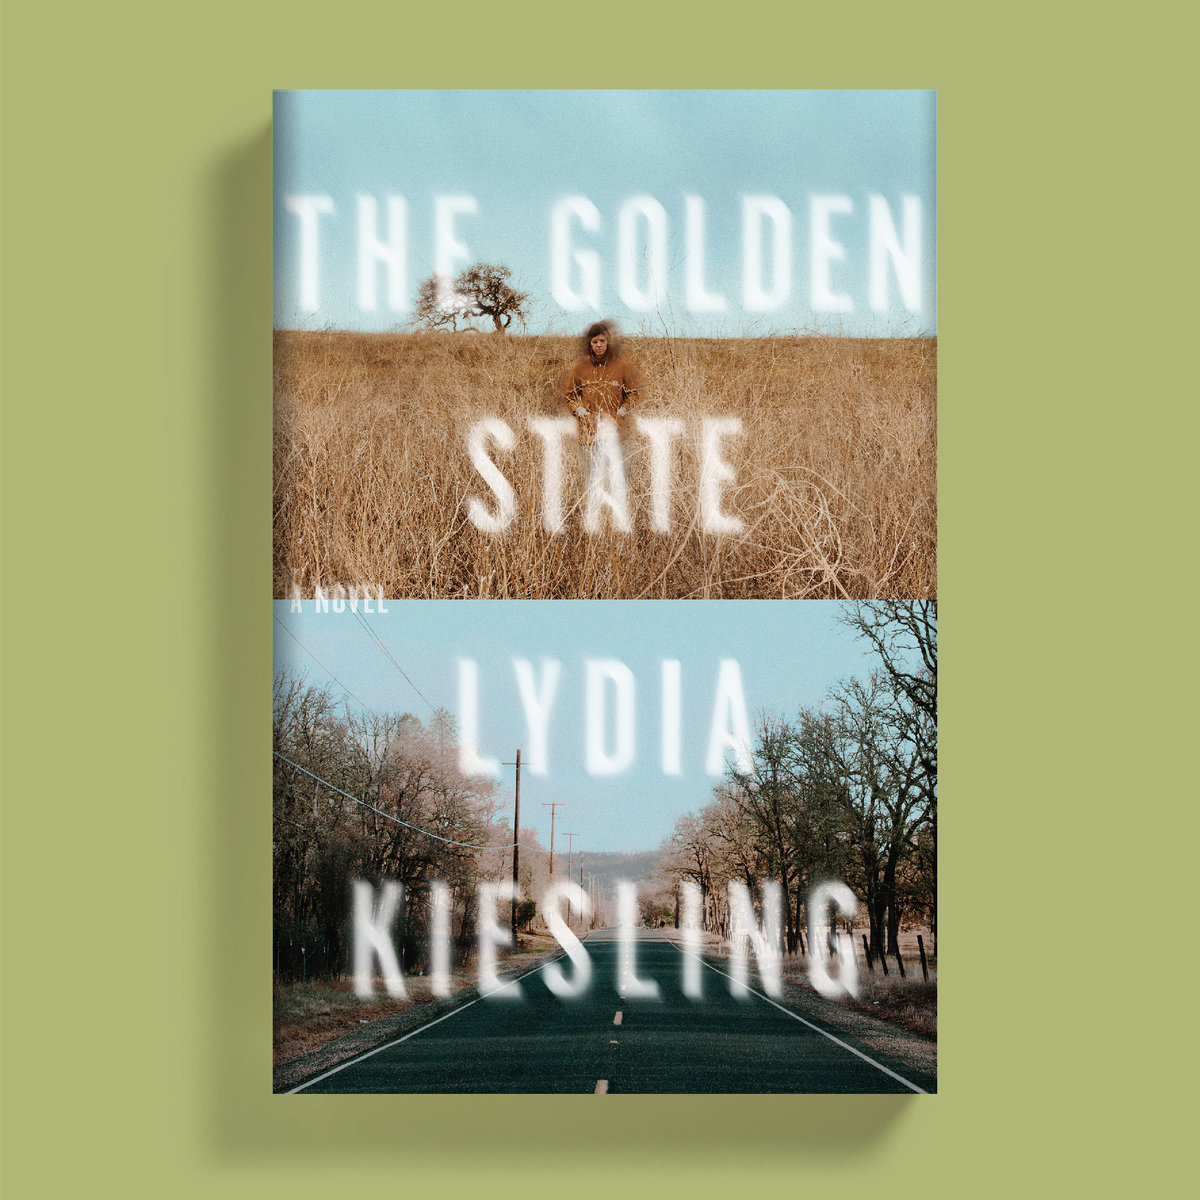 Goldenstate bookshot